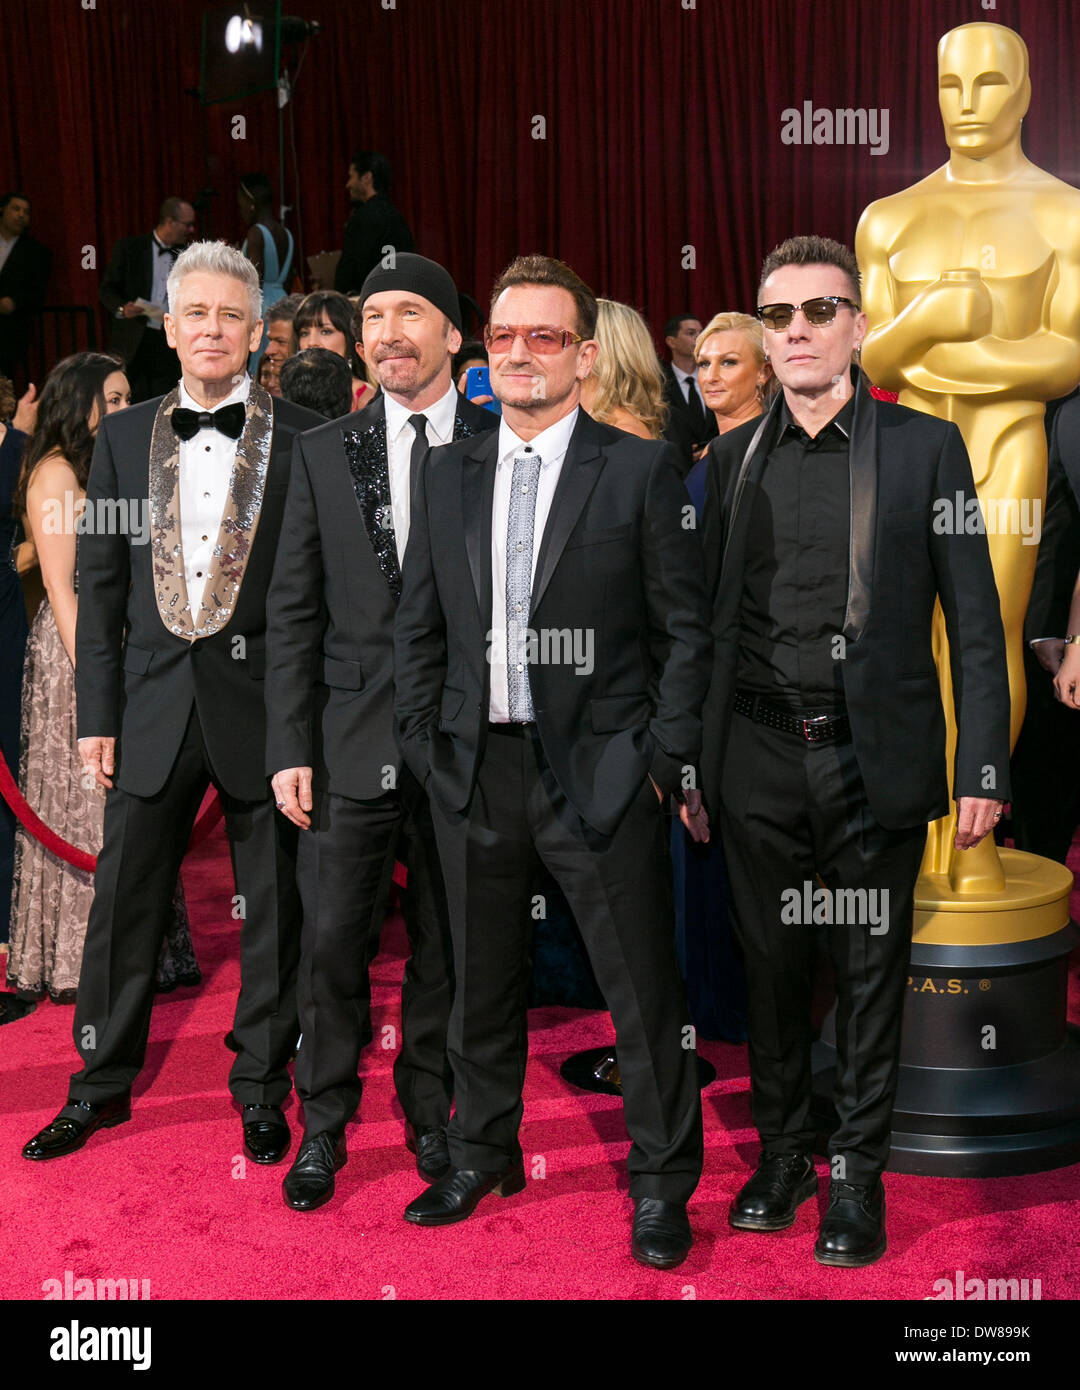 U2 86TH ANNUAL ACADEMY AWARDS RED CARPET LOS ANGELES  USA 02 March 2014 - Stock Image